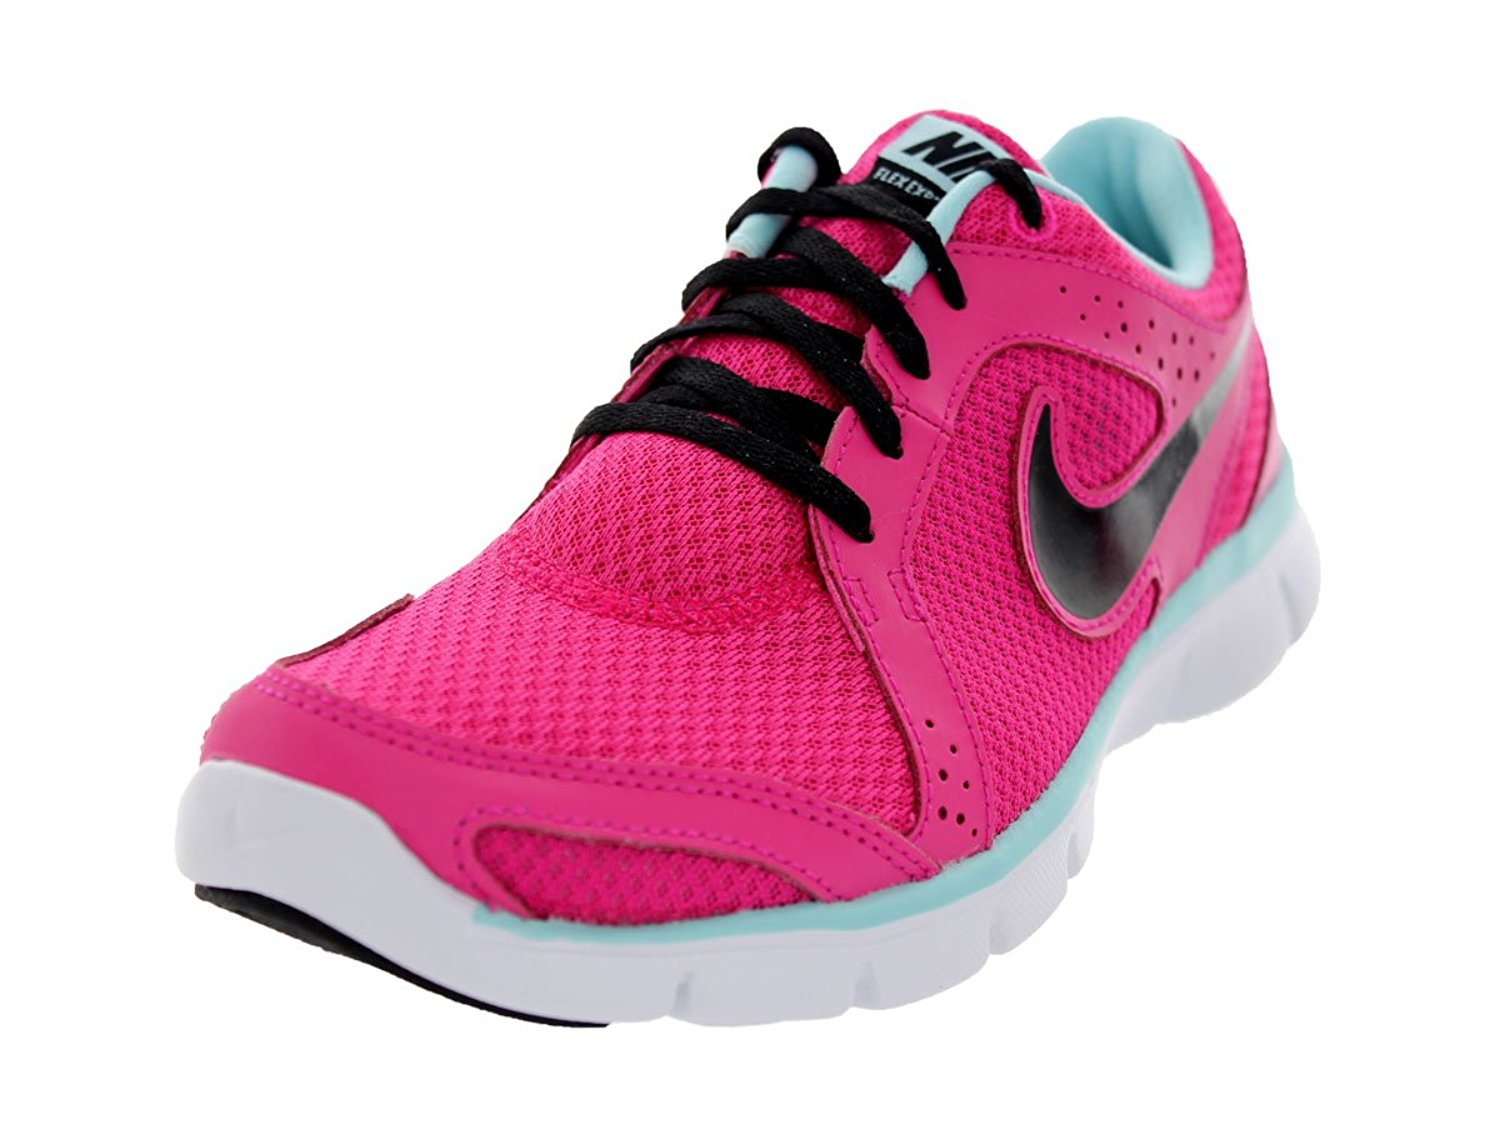 bfeea071375 Get Quotations · Nike Flex Experience Run Pink Black Ladies Running Shoes